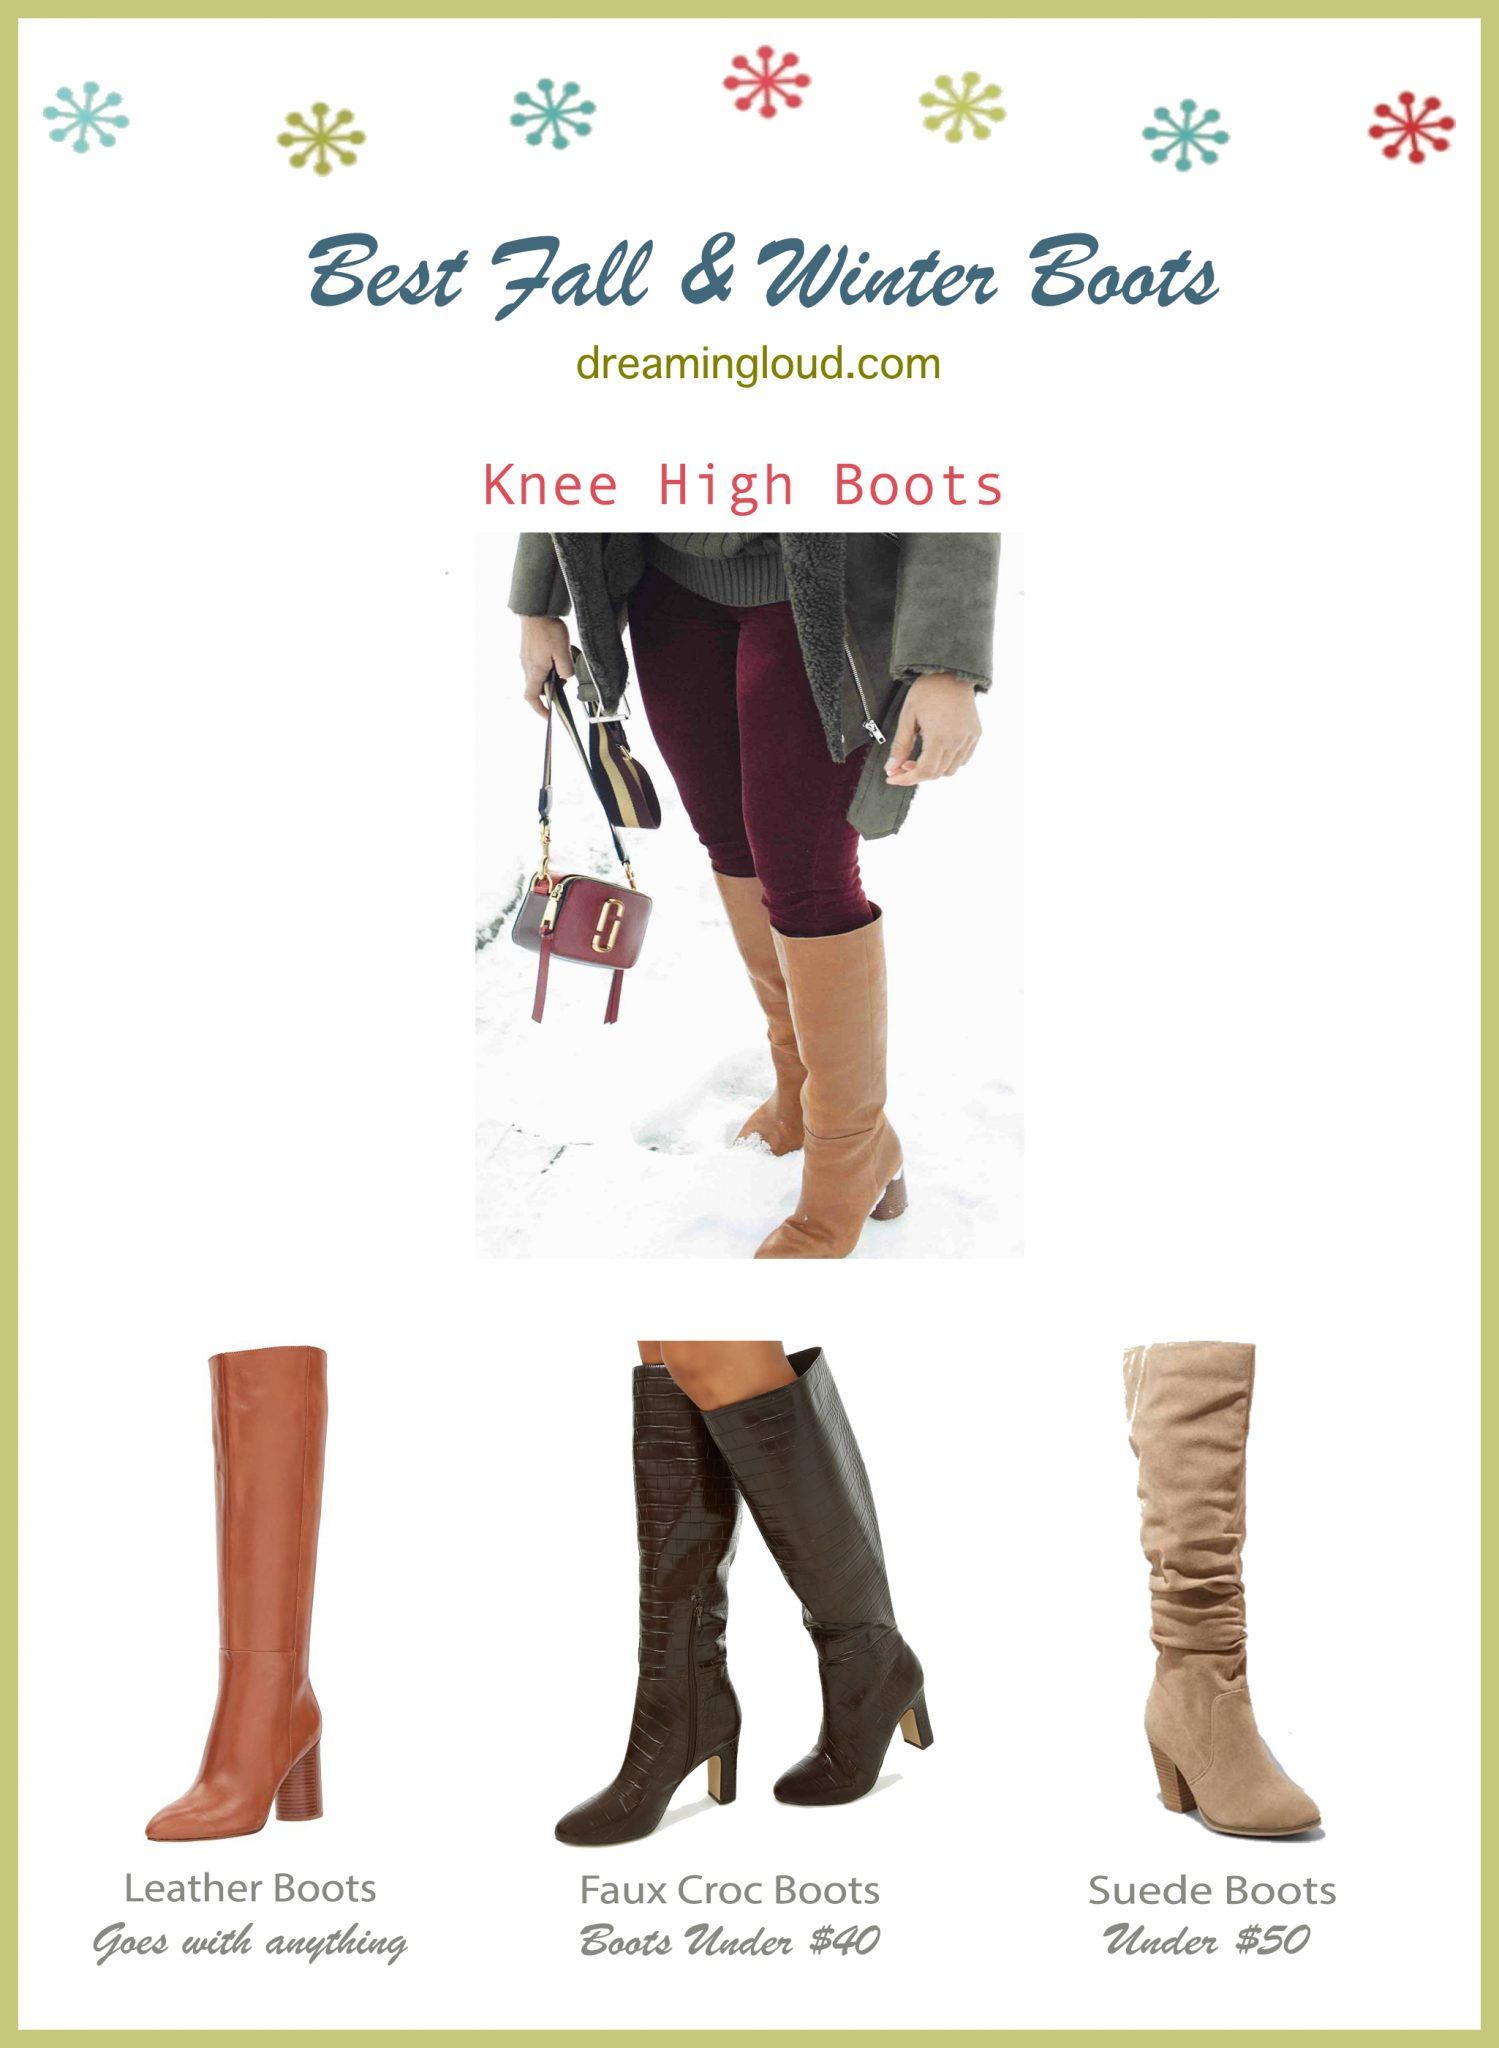 Best Fall and Winter boots- Knee High Boots